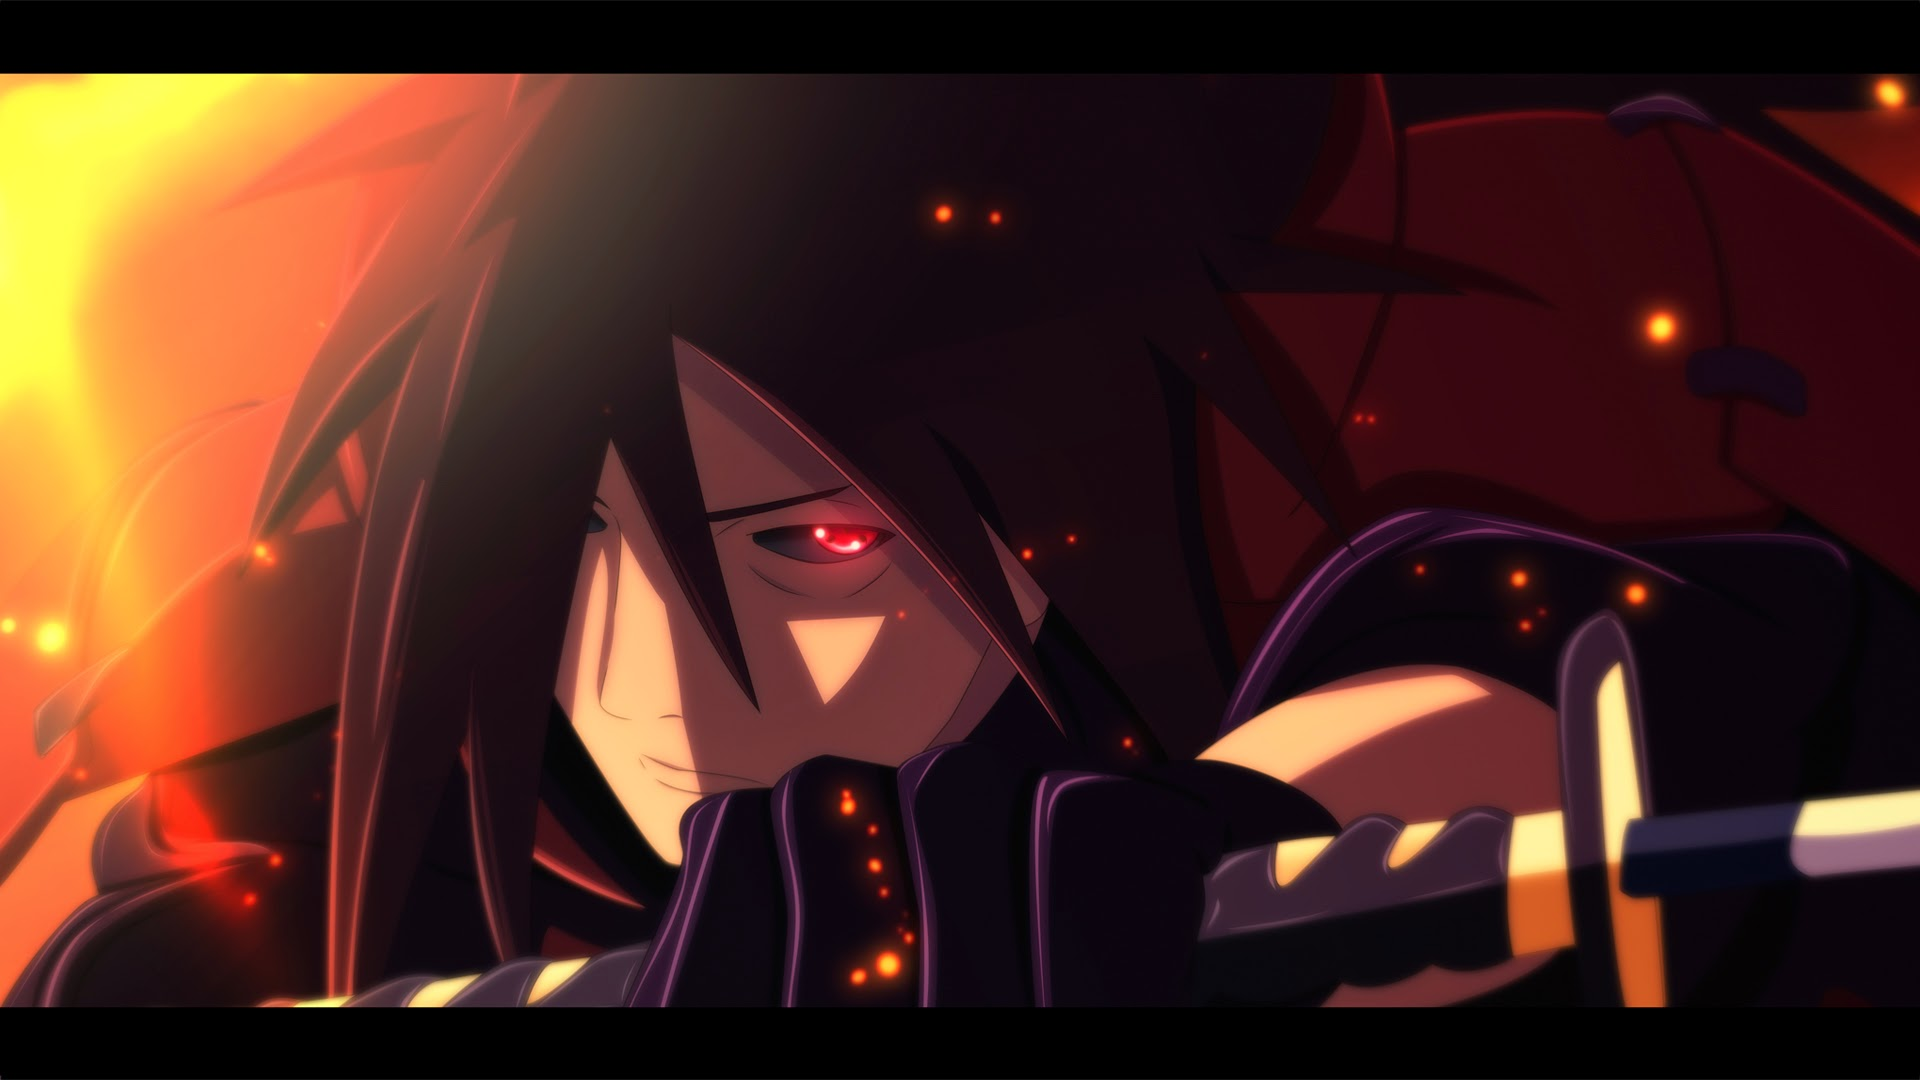 madara uchiha sharingan eyes hd wallpaper 1920x1080 deviant art 1920x1080